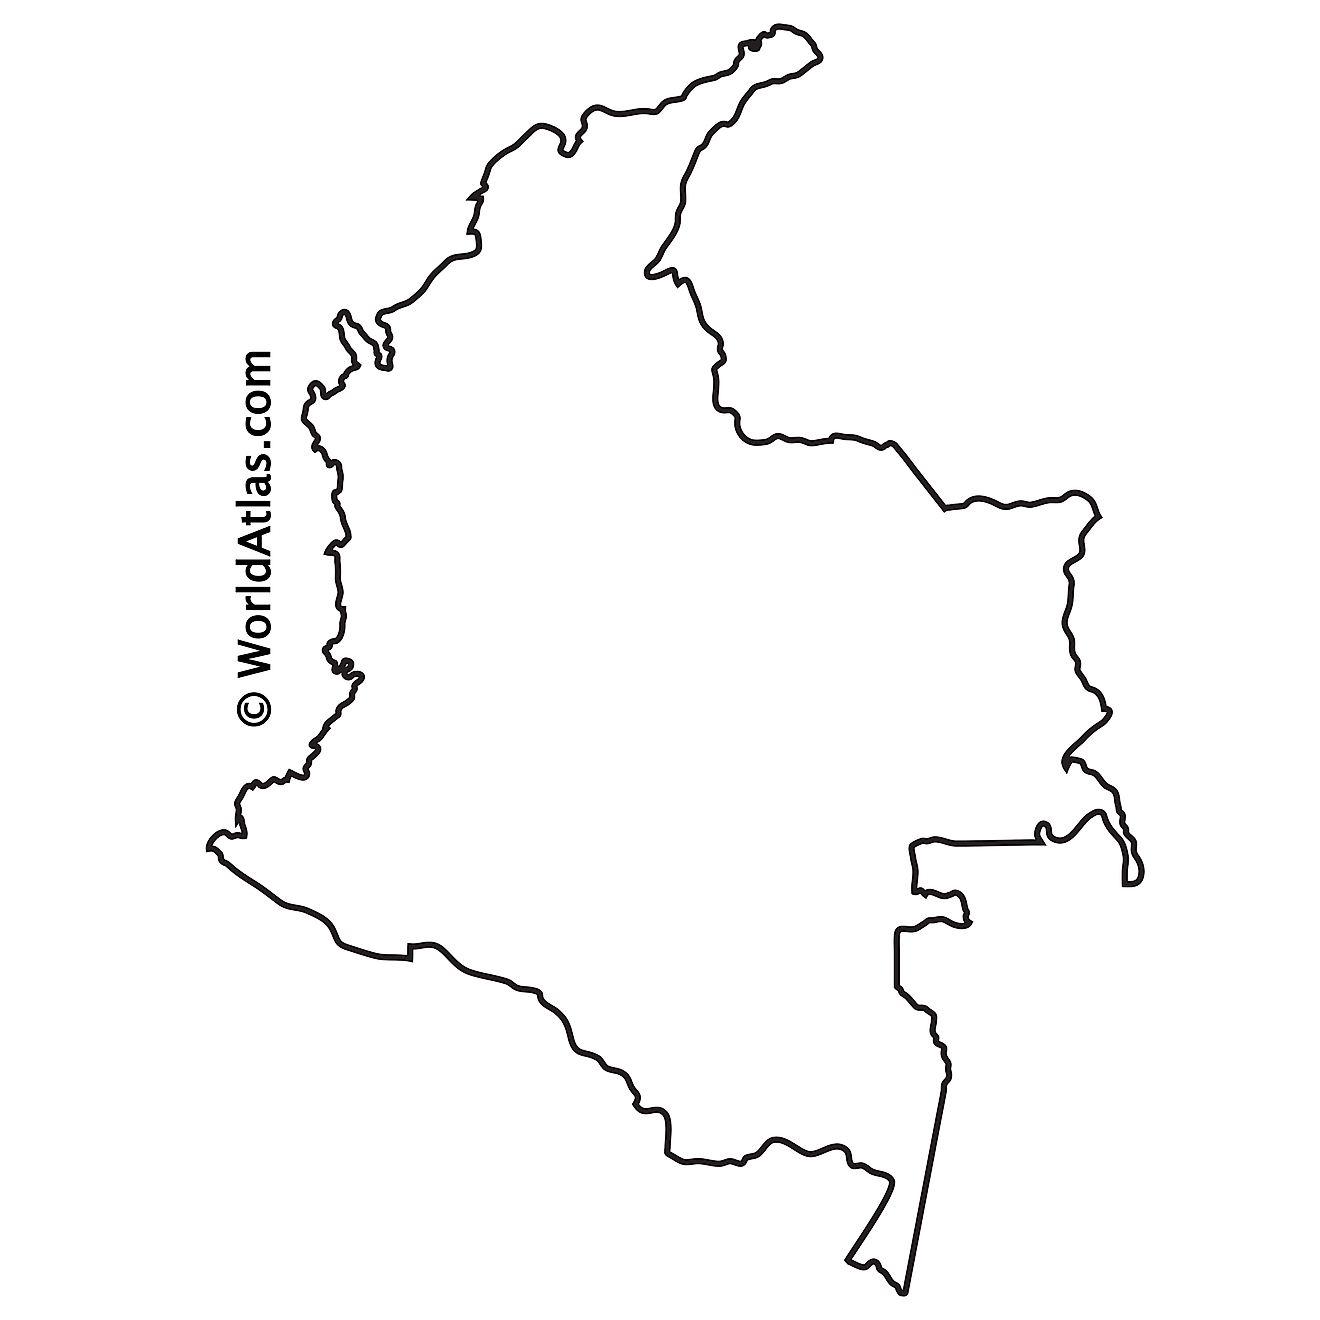 Outline map of Colombia